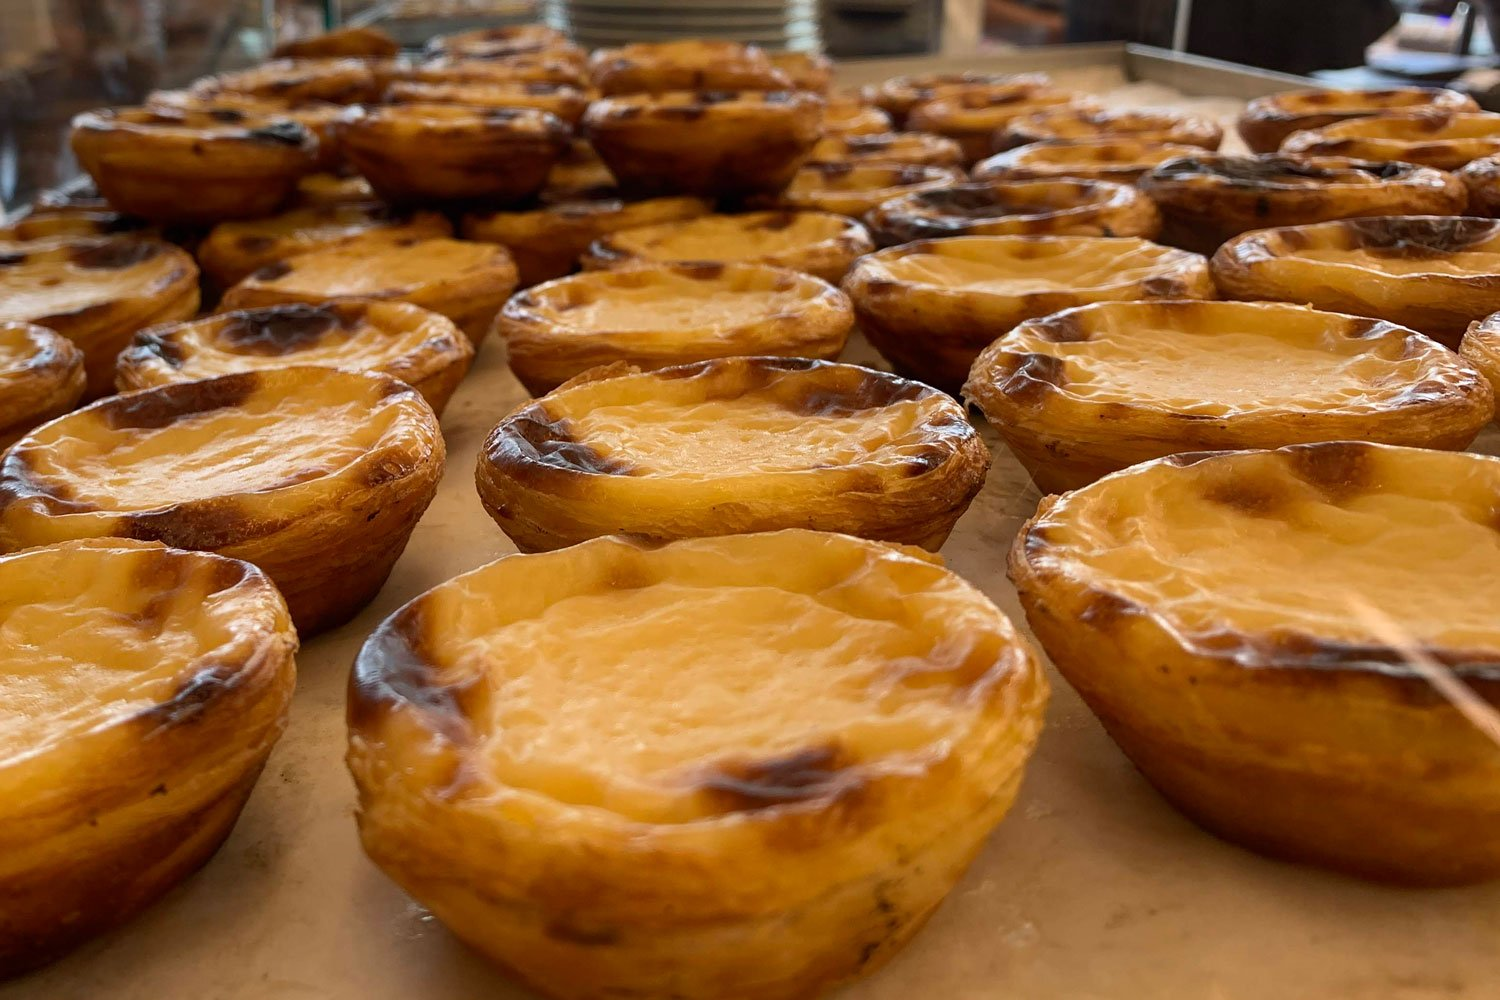 Mmmm... Pasteis de nata are a highlight of Portugal's food culture